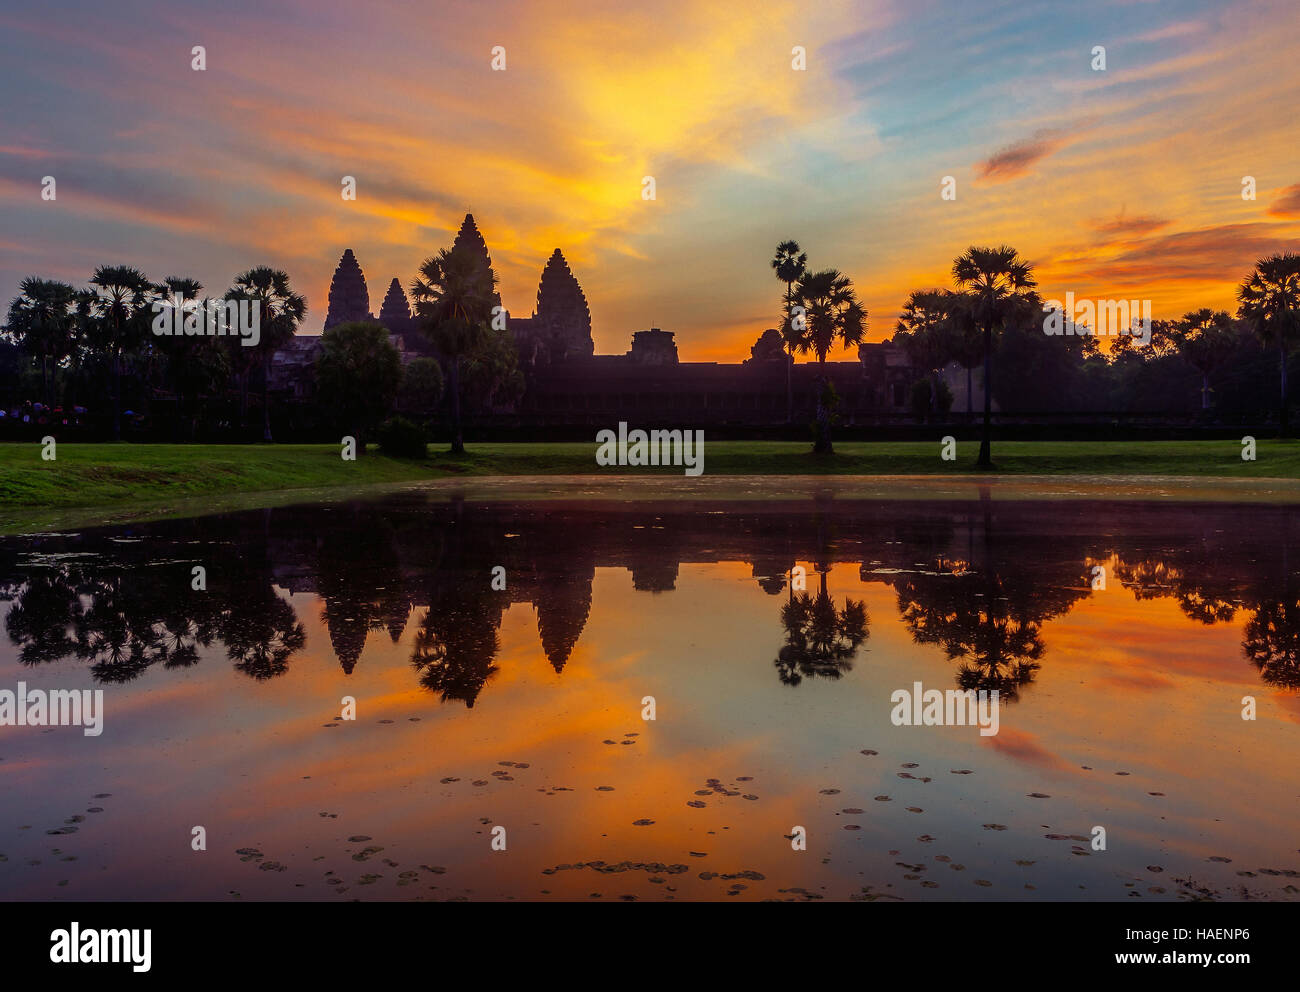 Sunrise over Angkor Wat, Siem Reap, Kingdom of Cambodia. - Stock Image